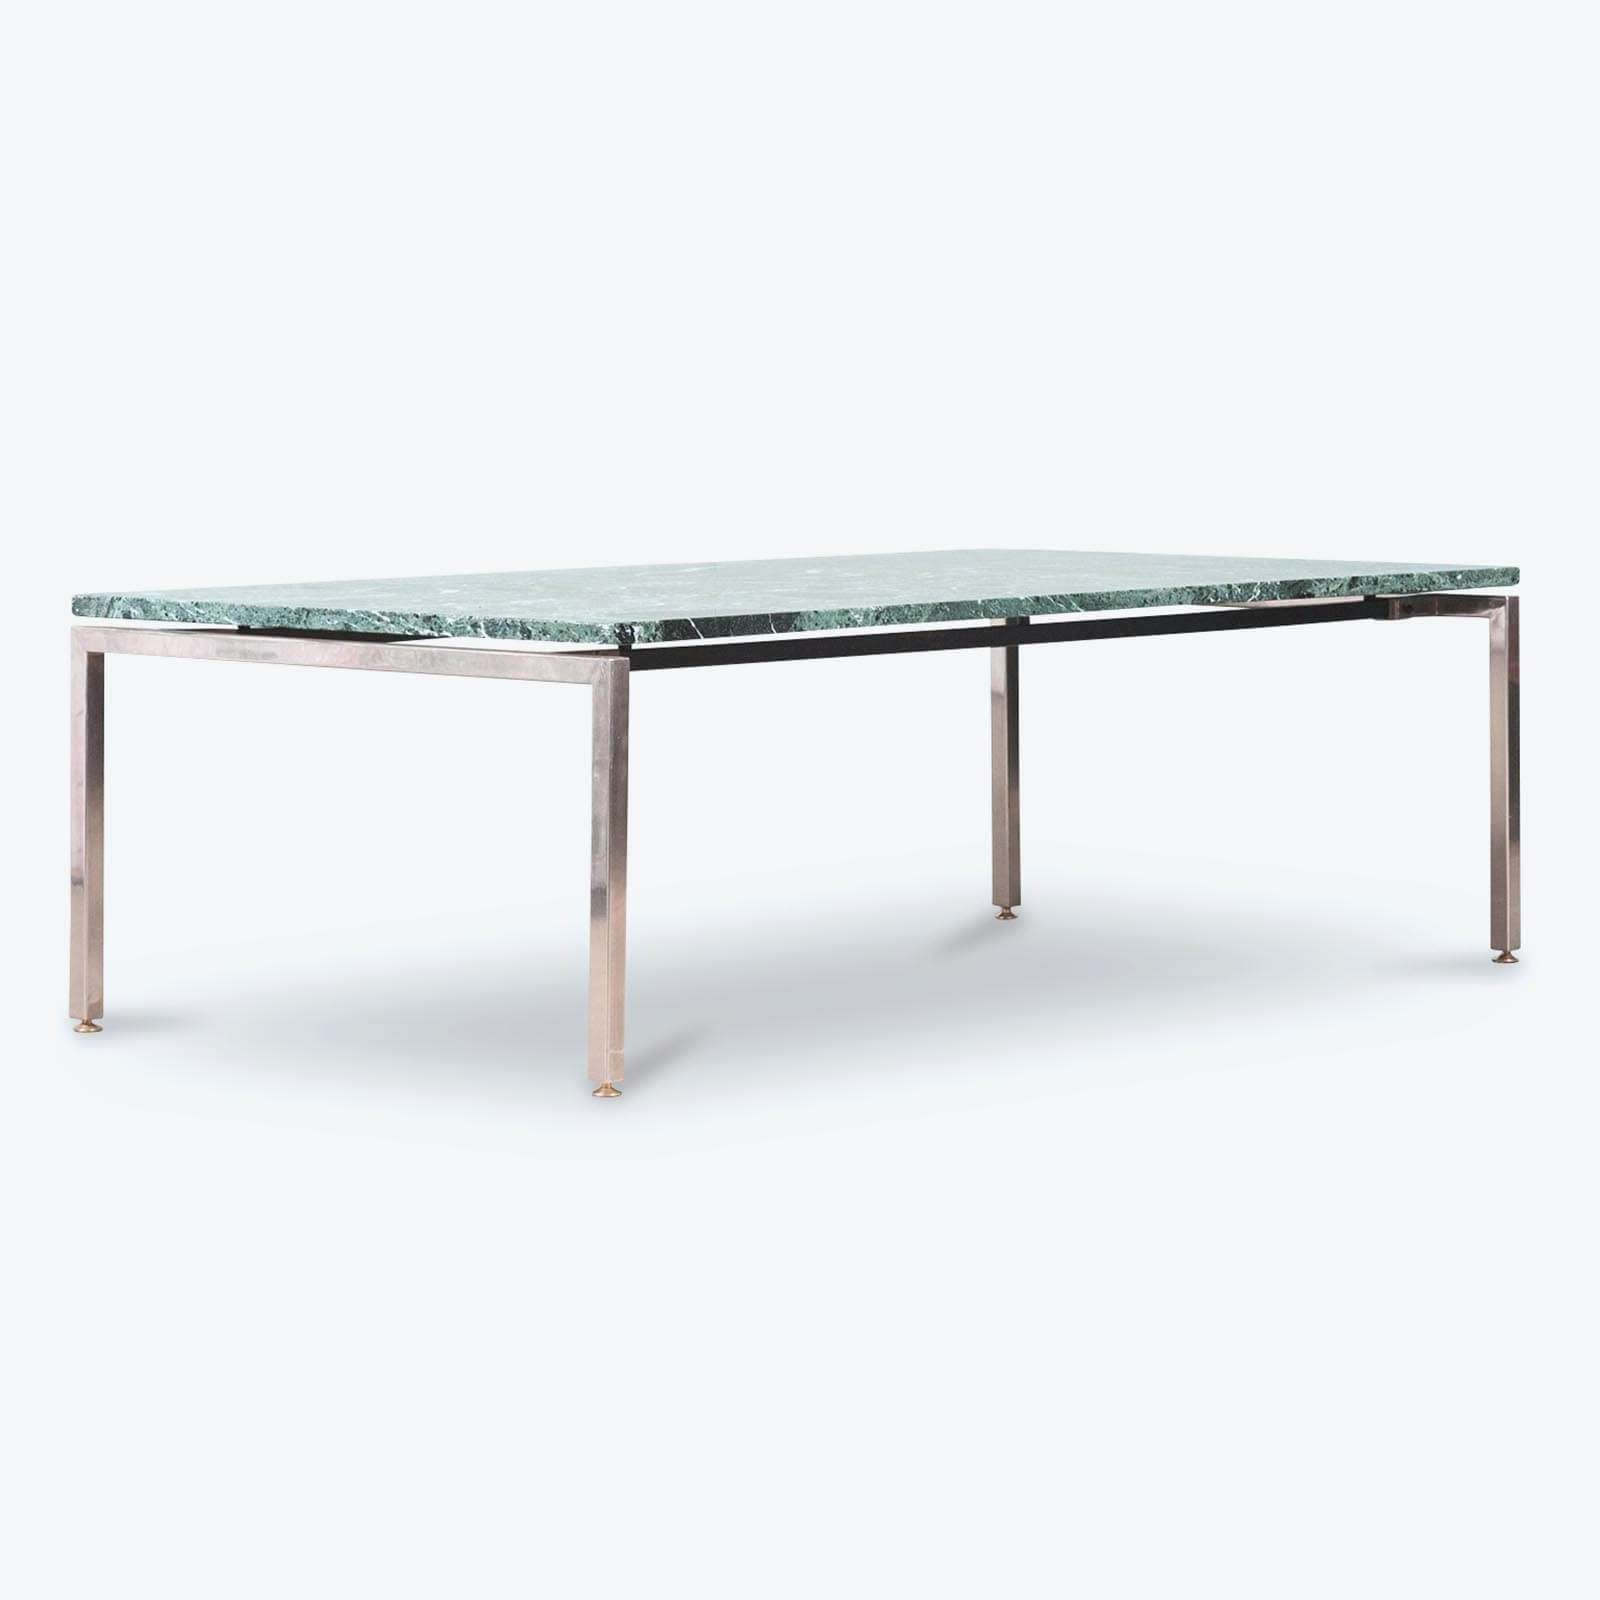 Coffee Table In Green Marble With Chrome Legs, 1960s, Netherlands Pertaining To Most Current Chrome Leg Coffee Tables (View 16 of 20)